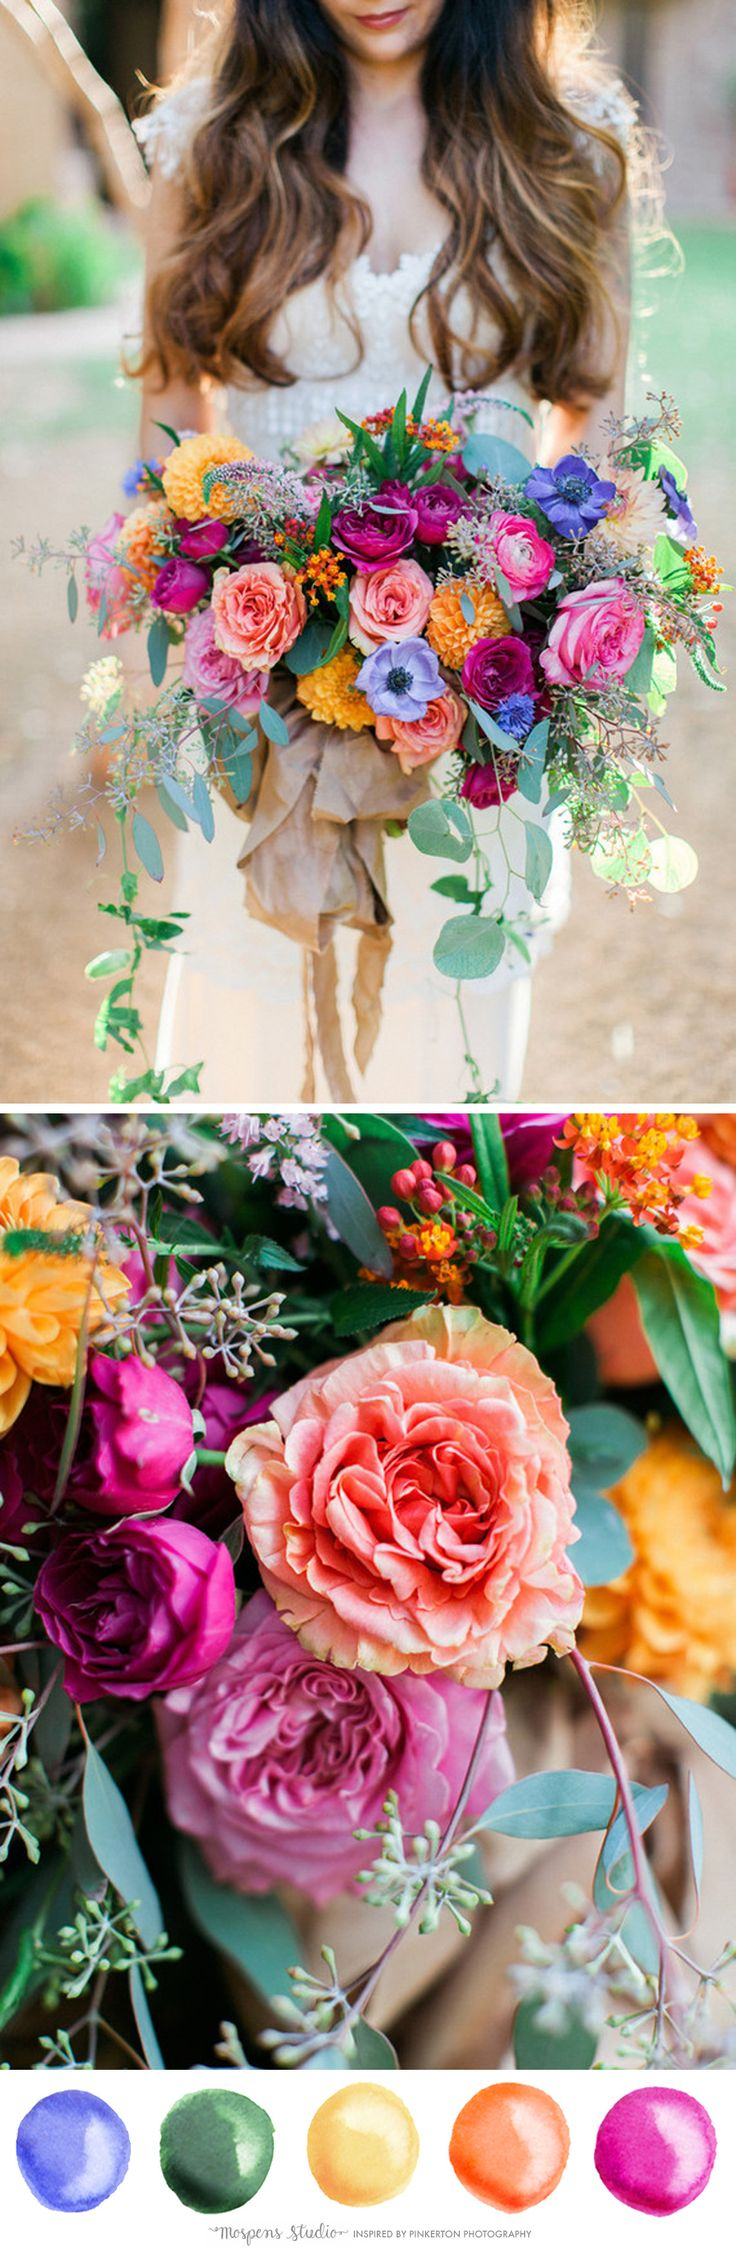 Best 25 wedding color palettes ideas on pinterest fall wedding one of the most beautiful summer wedding color palettes i have ever seen www junglespirit